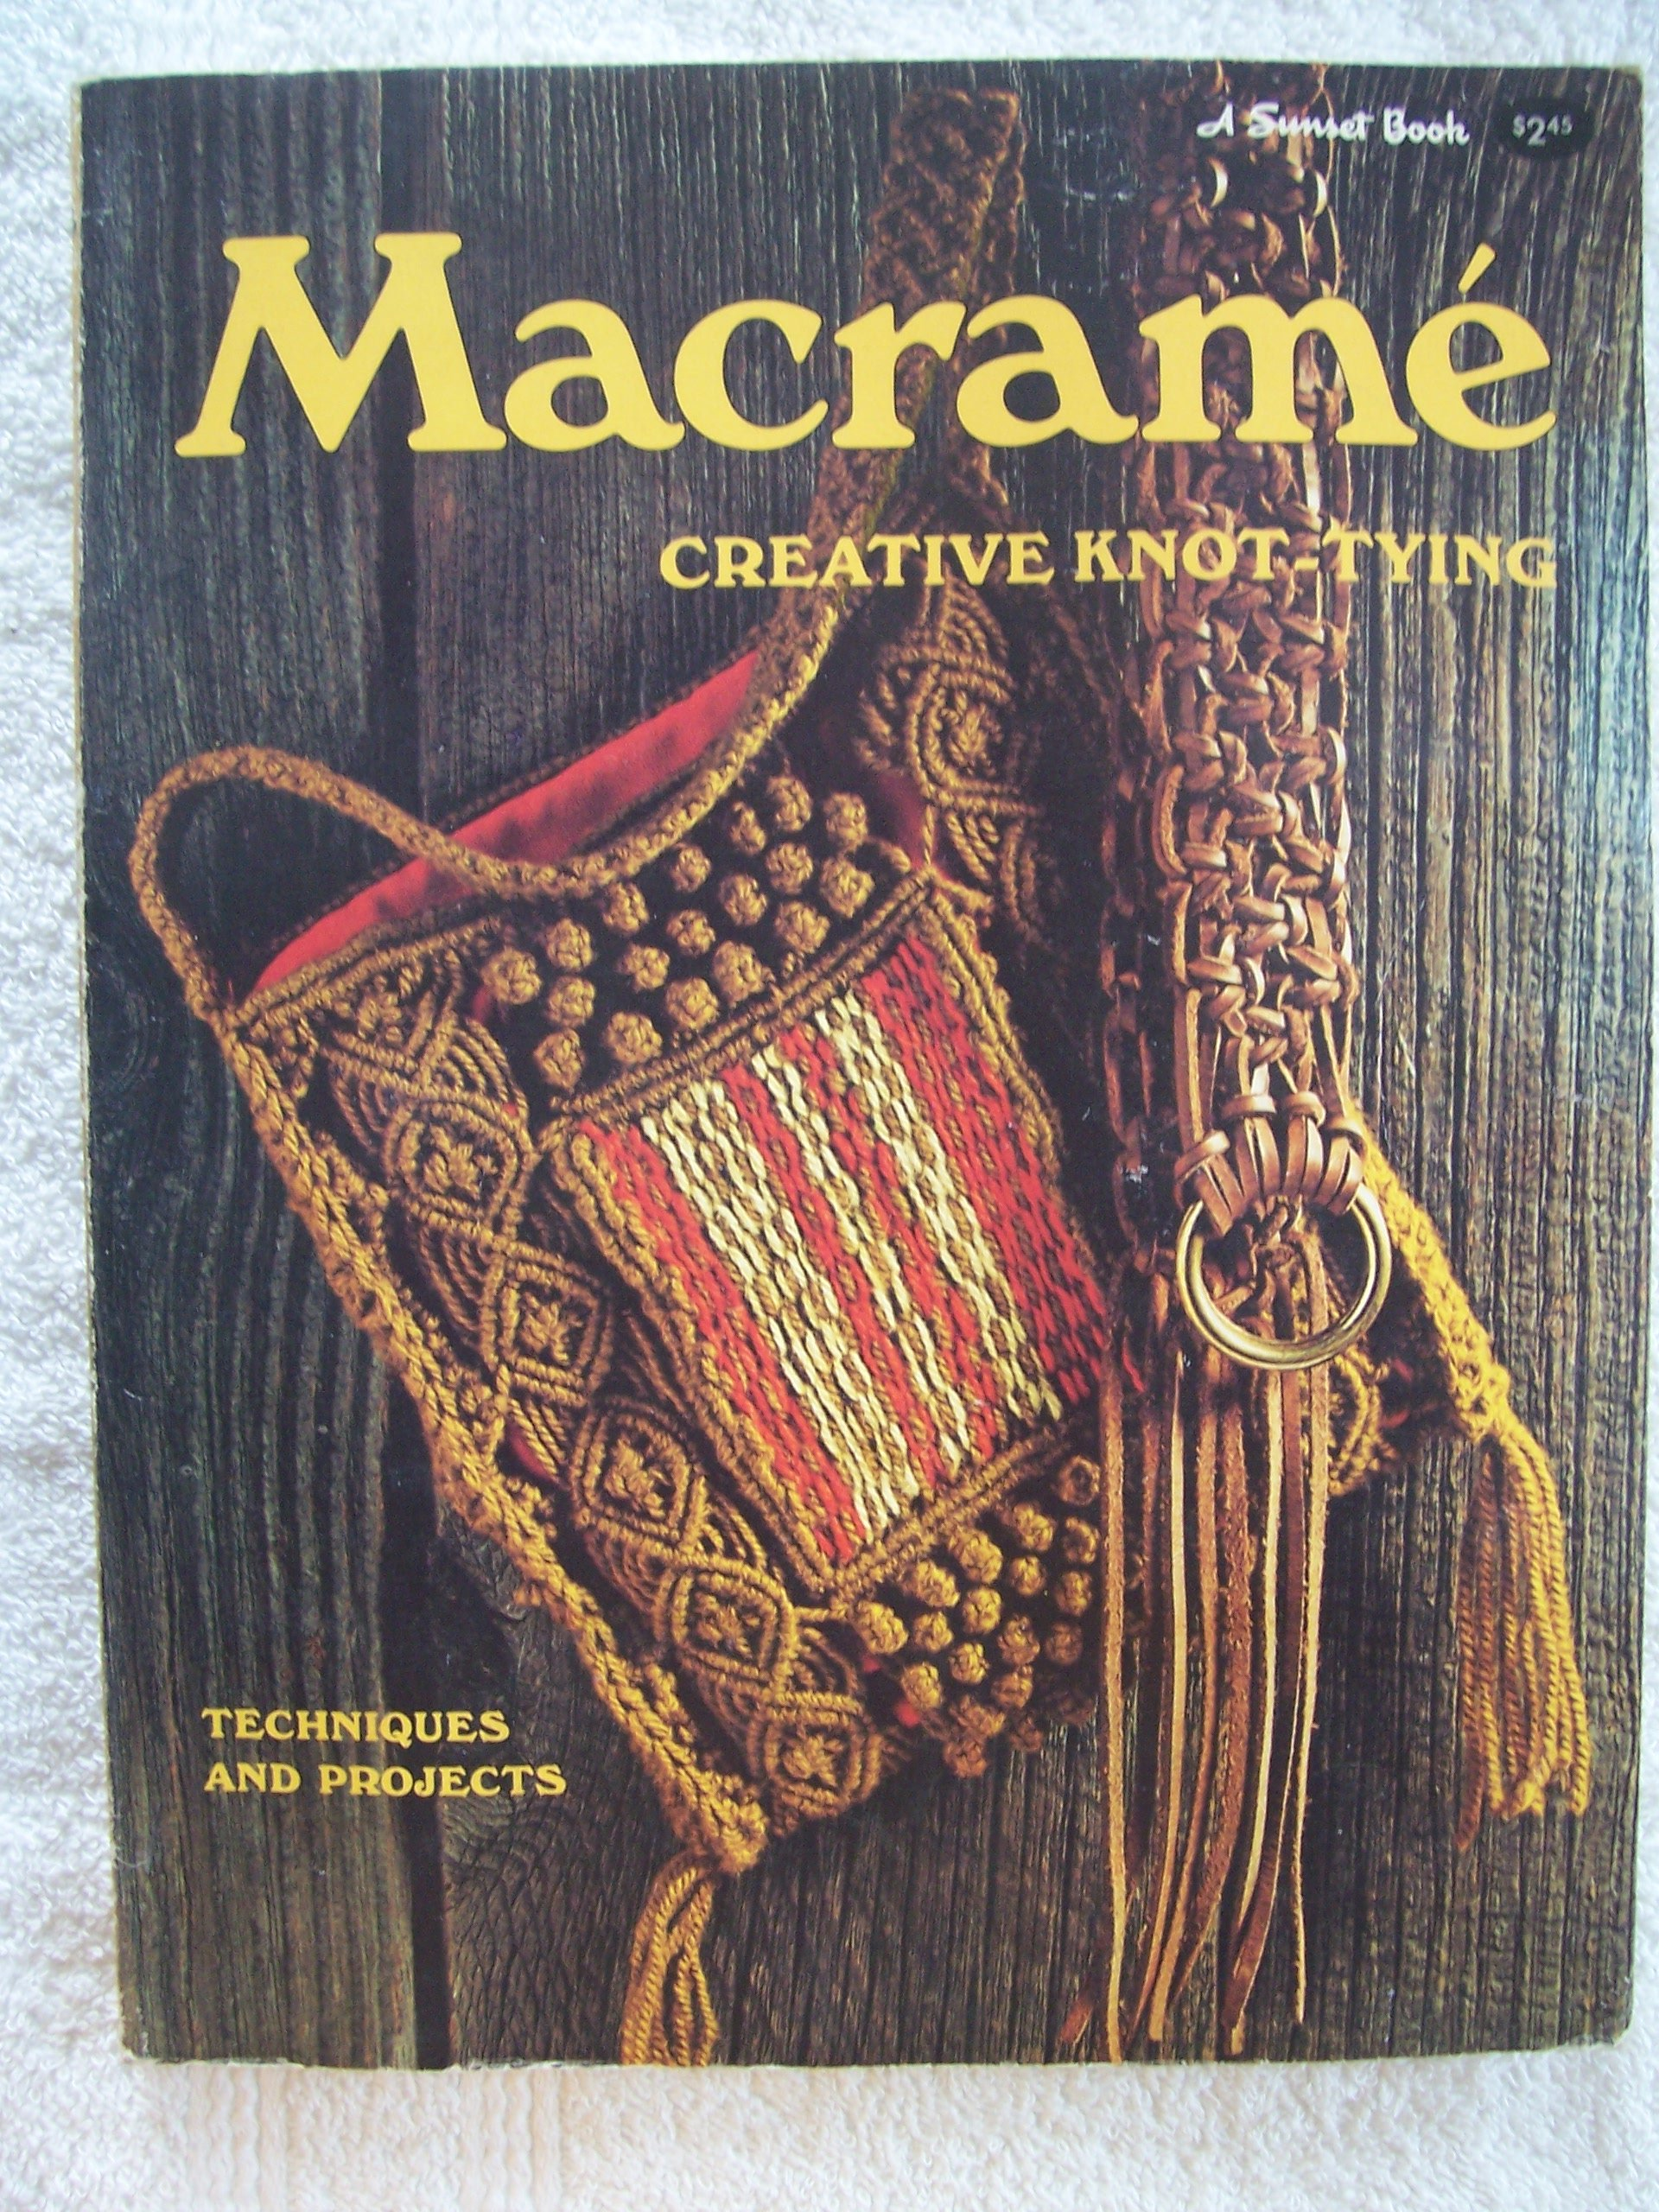 Macrame Creative Knot Tying Editors Of Sunset Books And How To Tie A Square Diagram Shoe Knots The Ins Outs Magazine